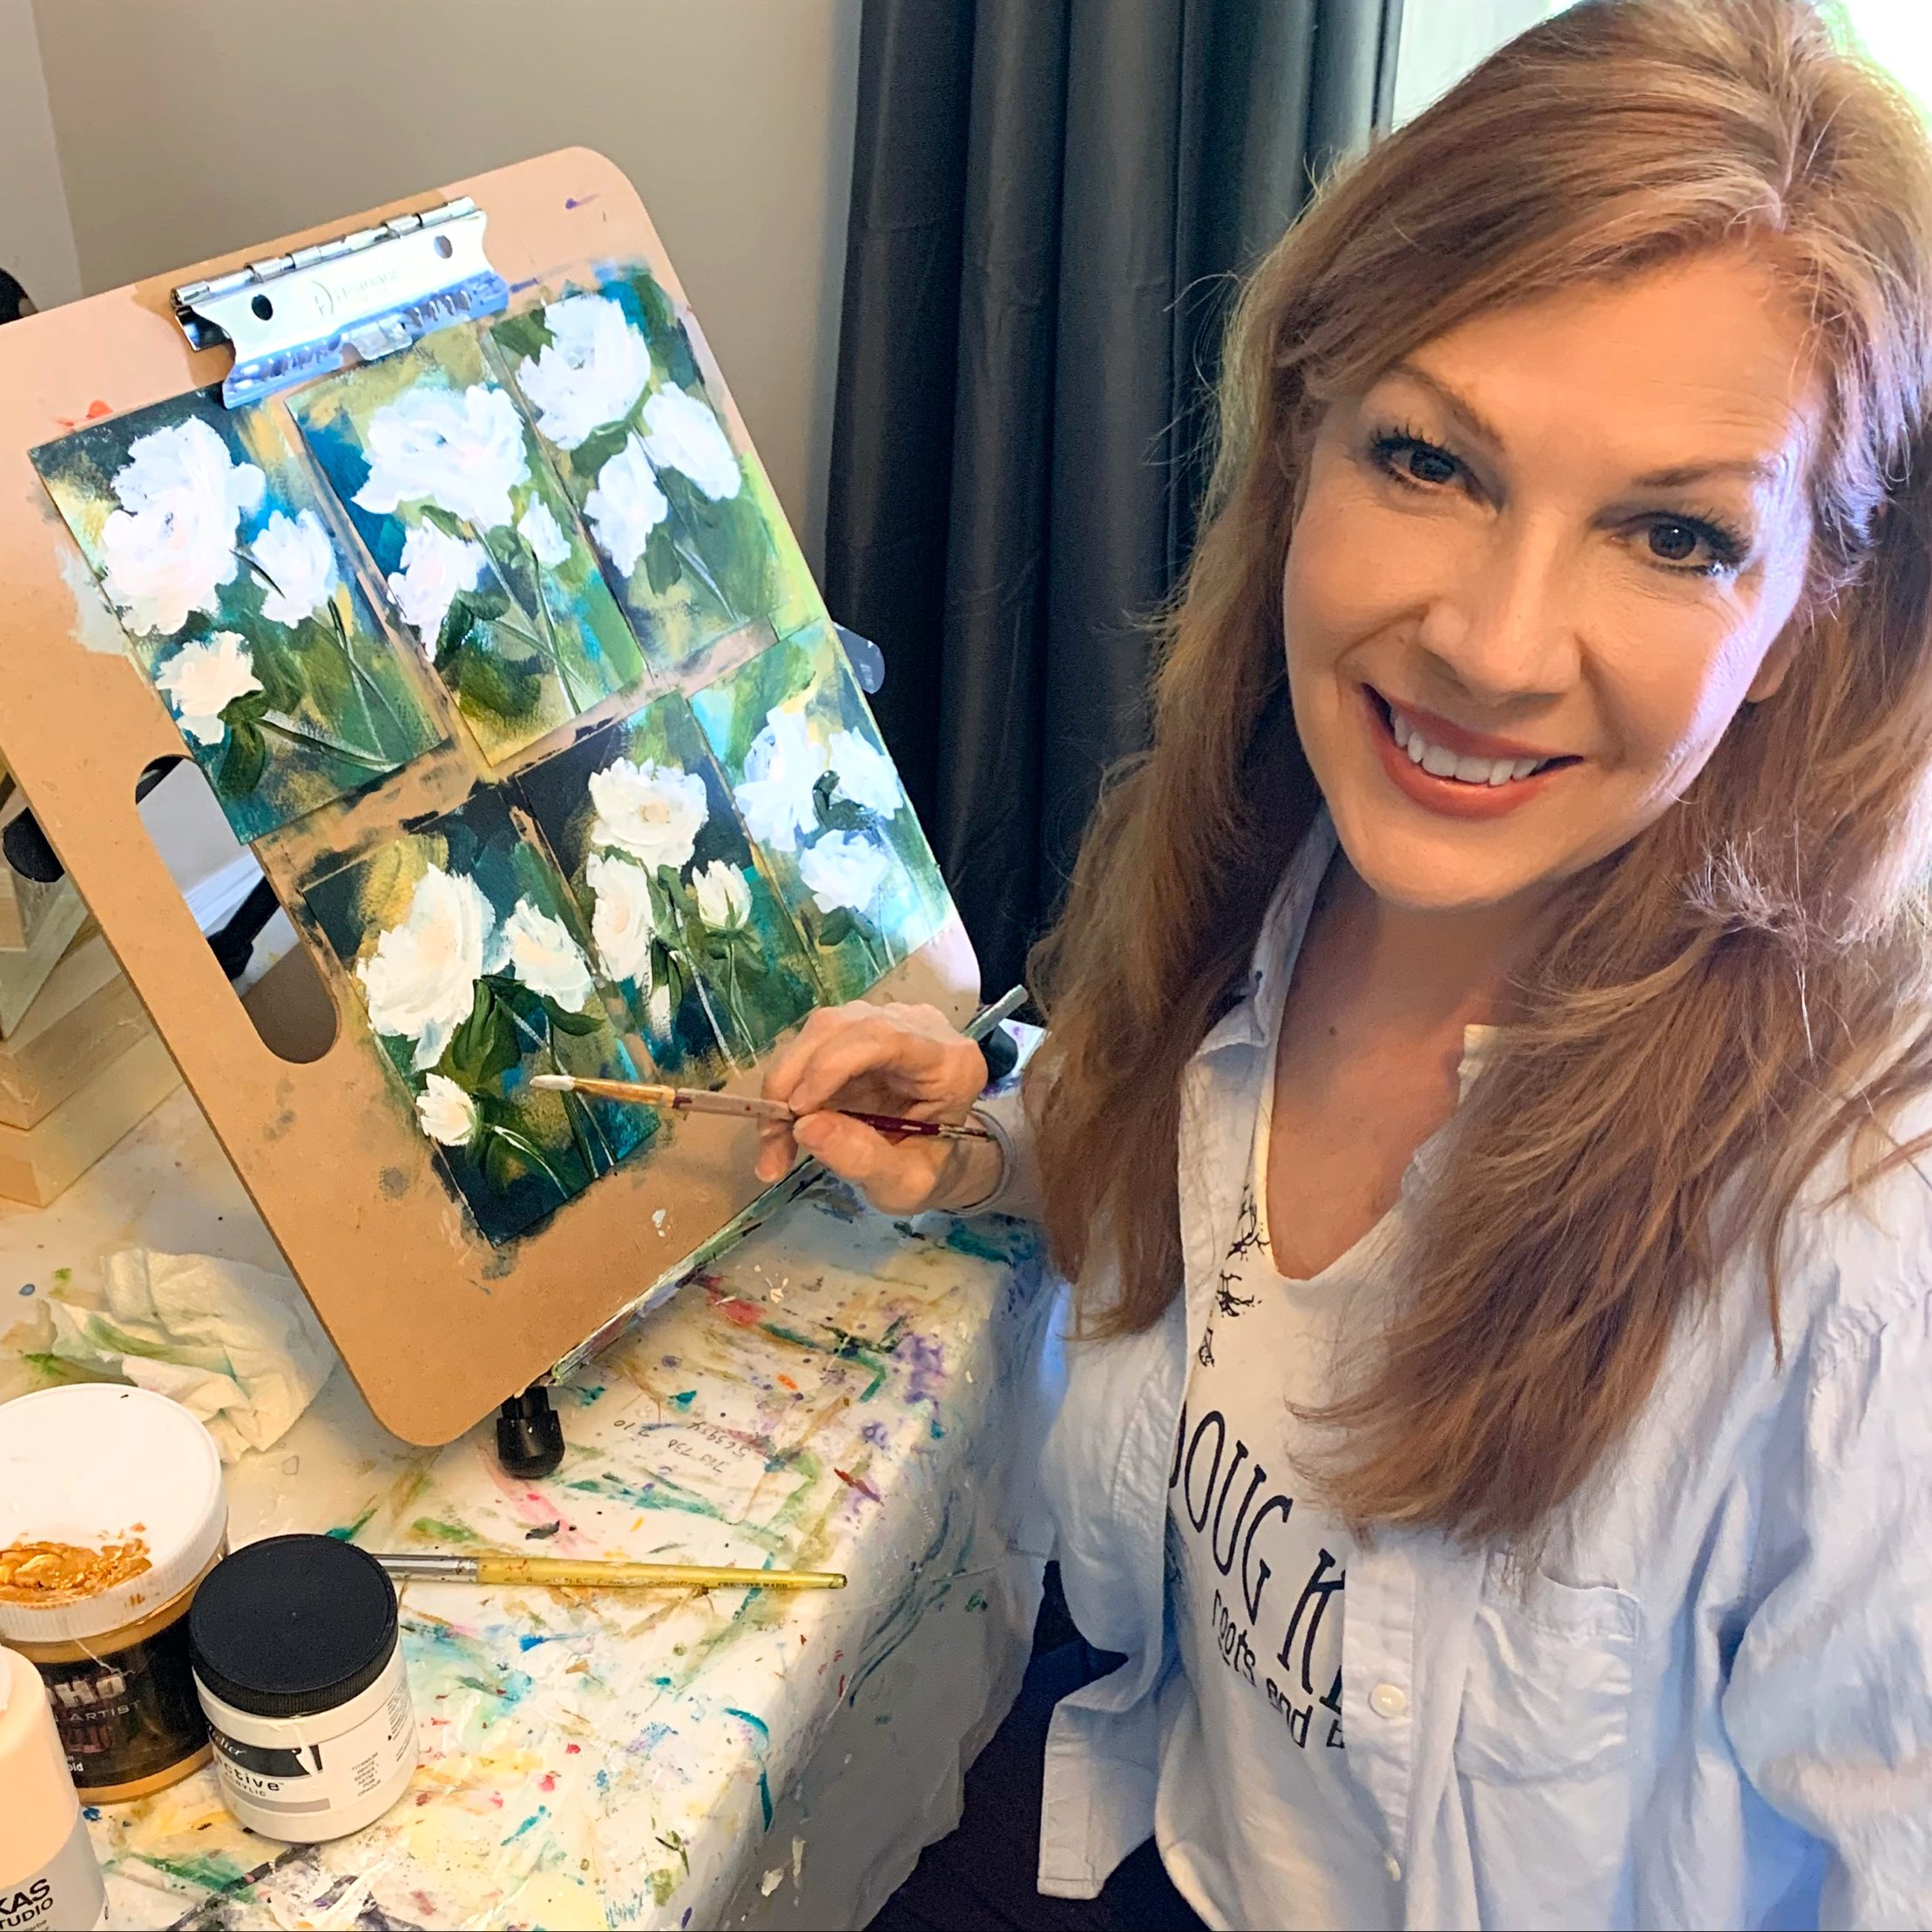 Artist paints roses for others